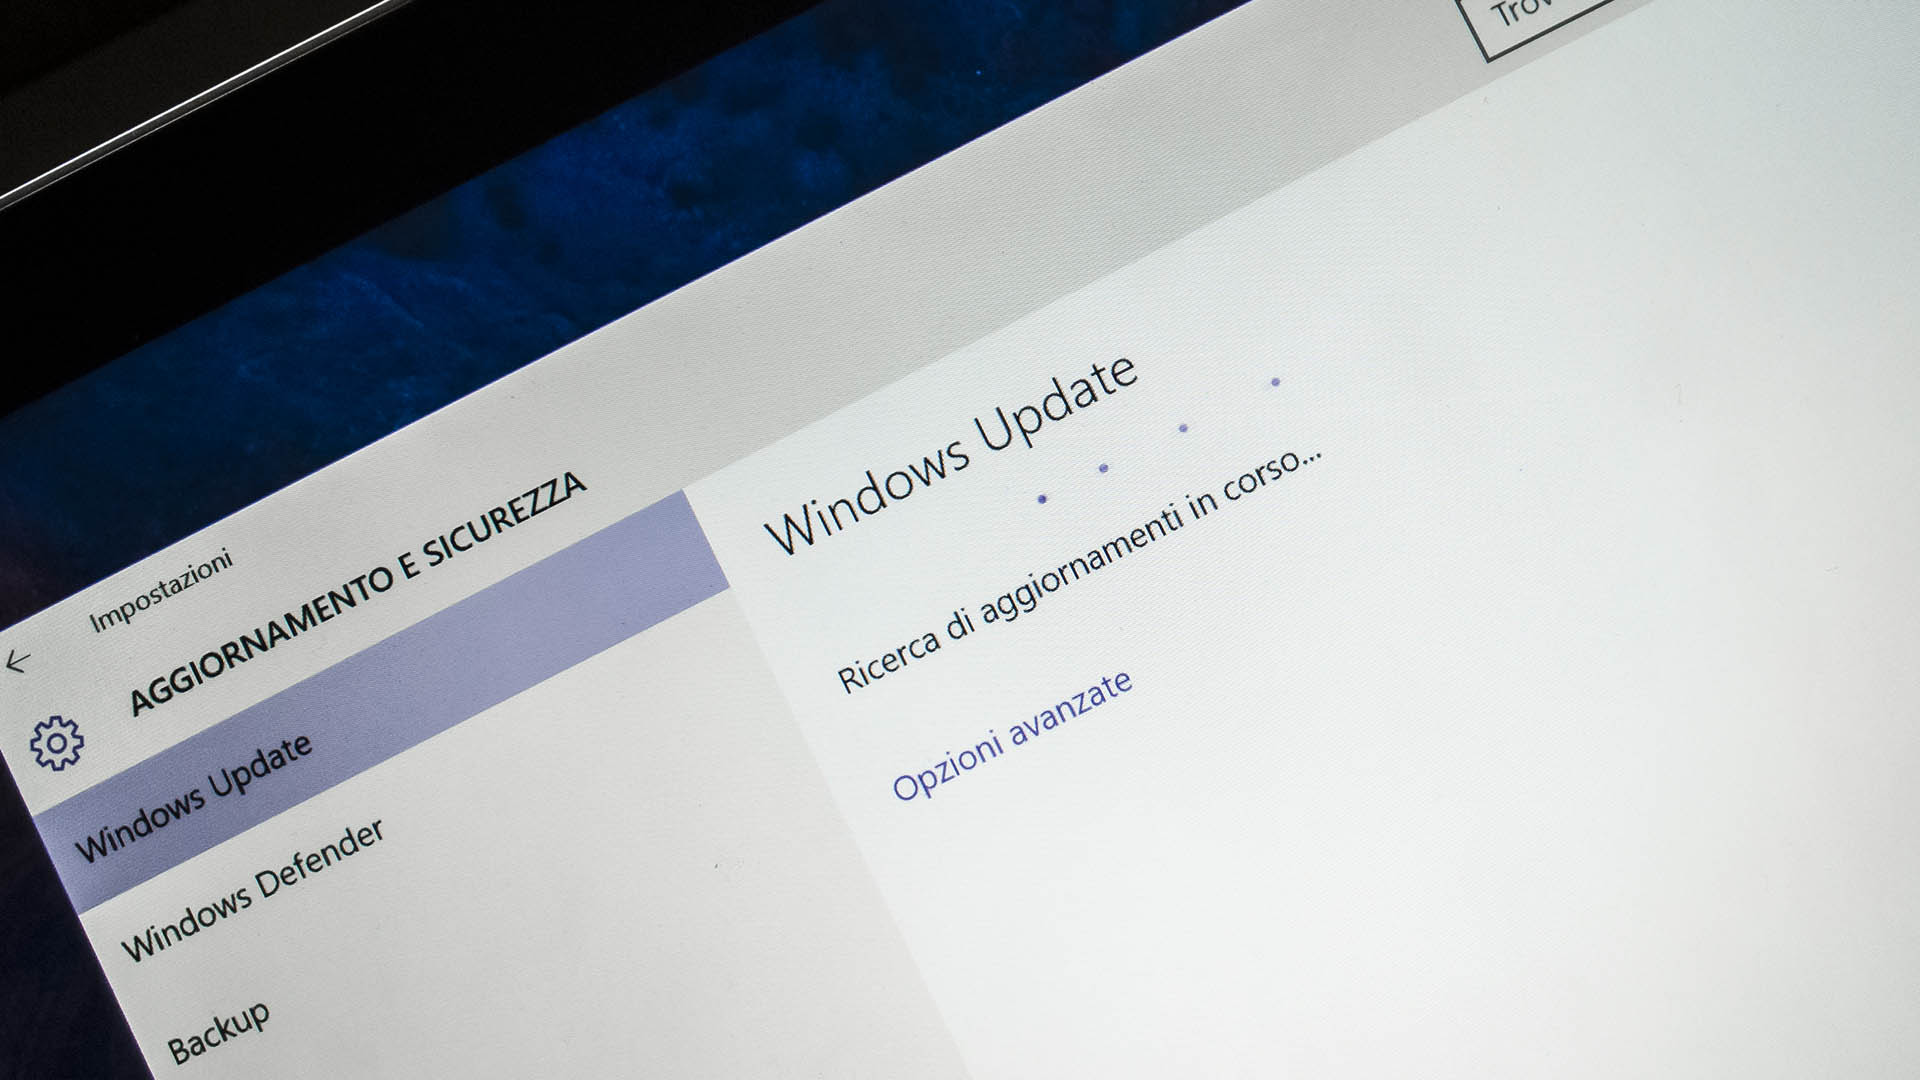 Windows Update Windows 10 quattordicesima patch